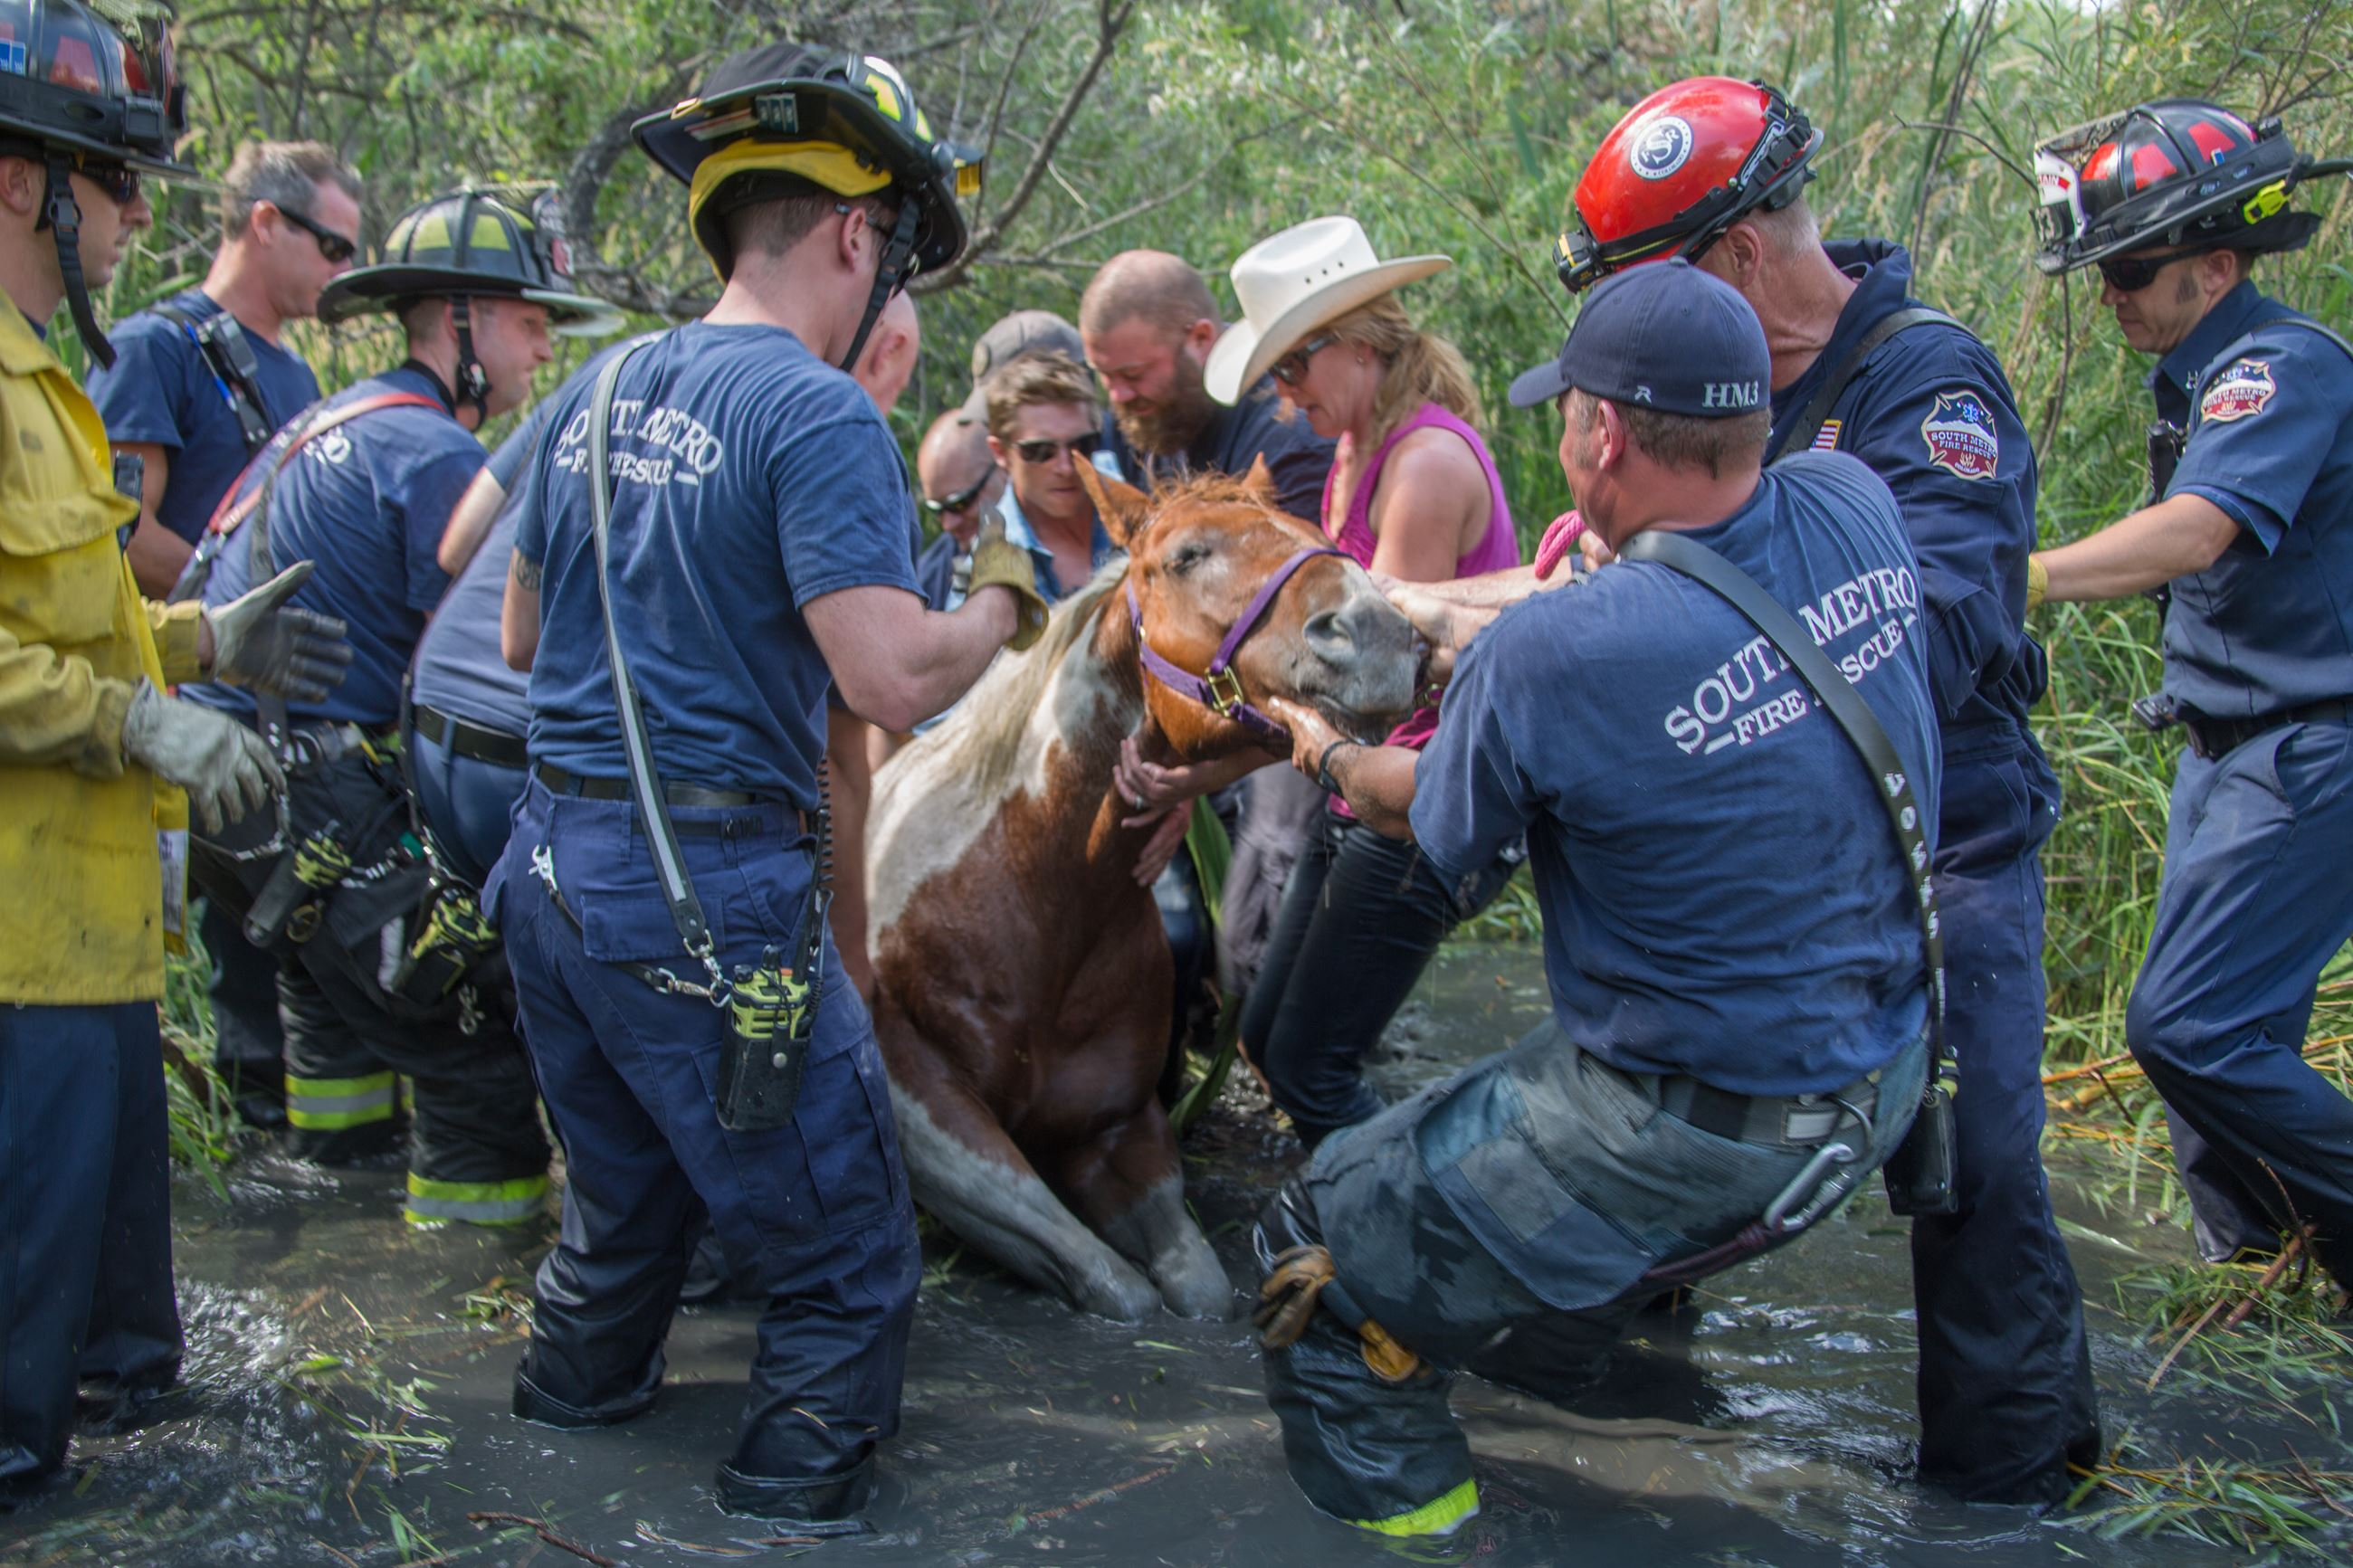 Firefighters Saving a Horse